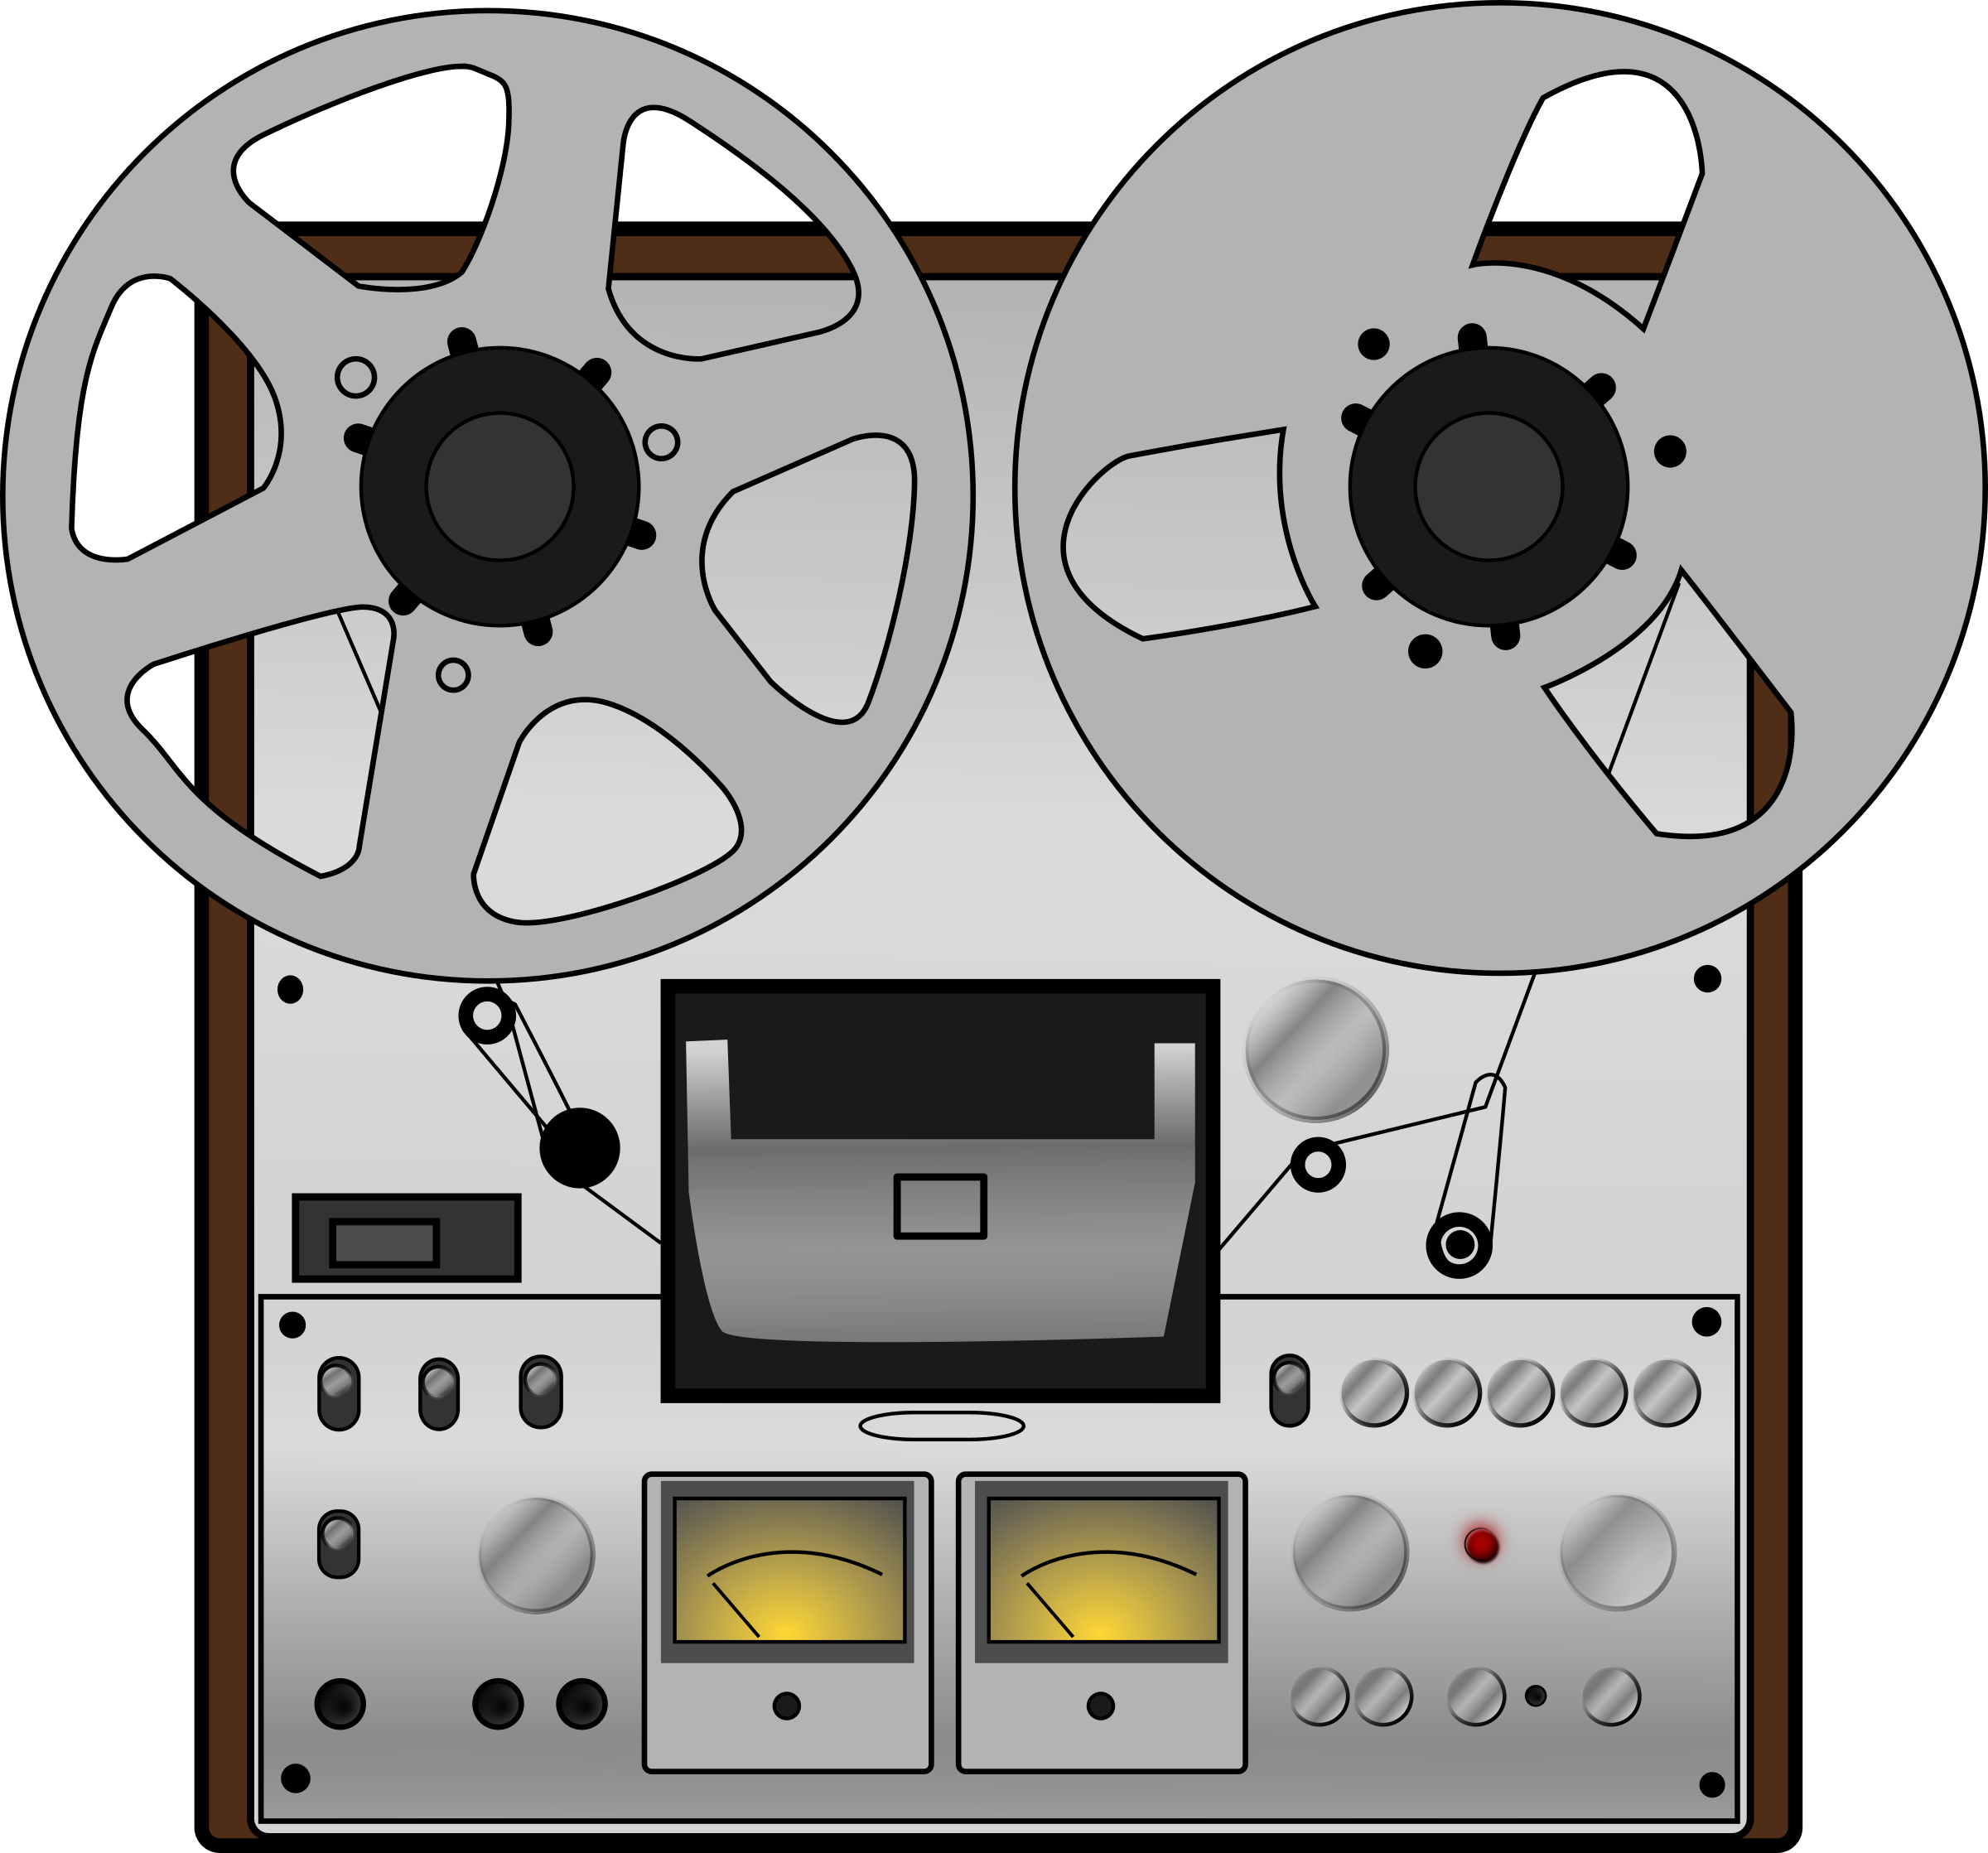 Reel to reel tape recorder by Upacesky